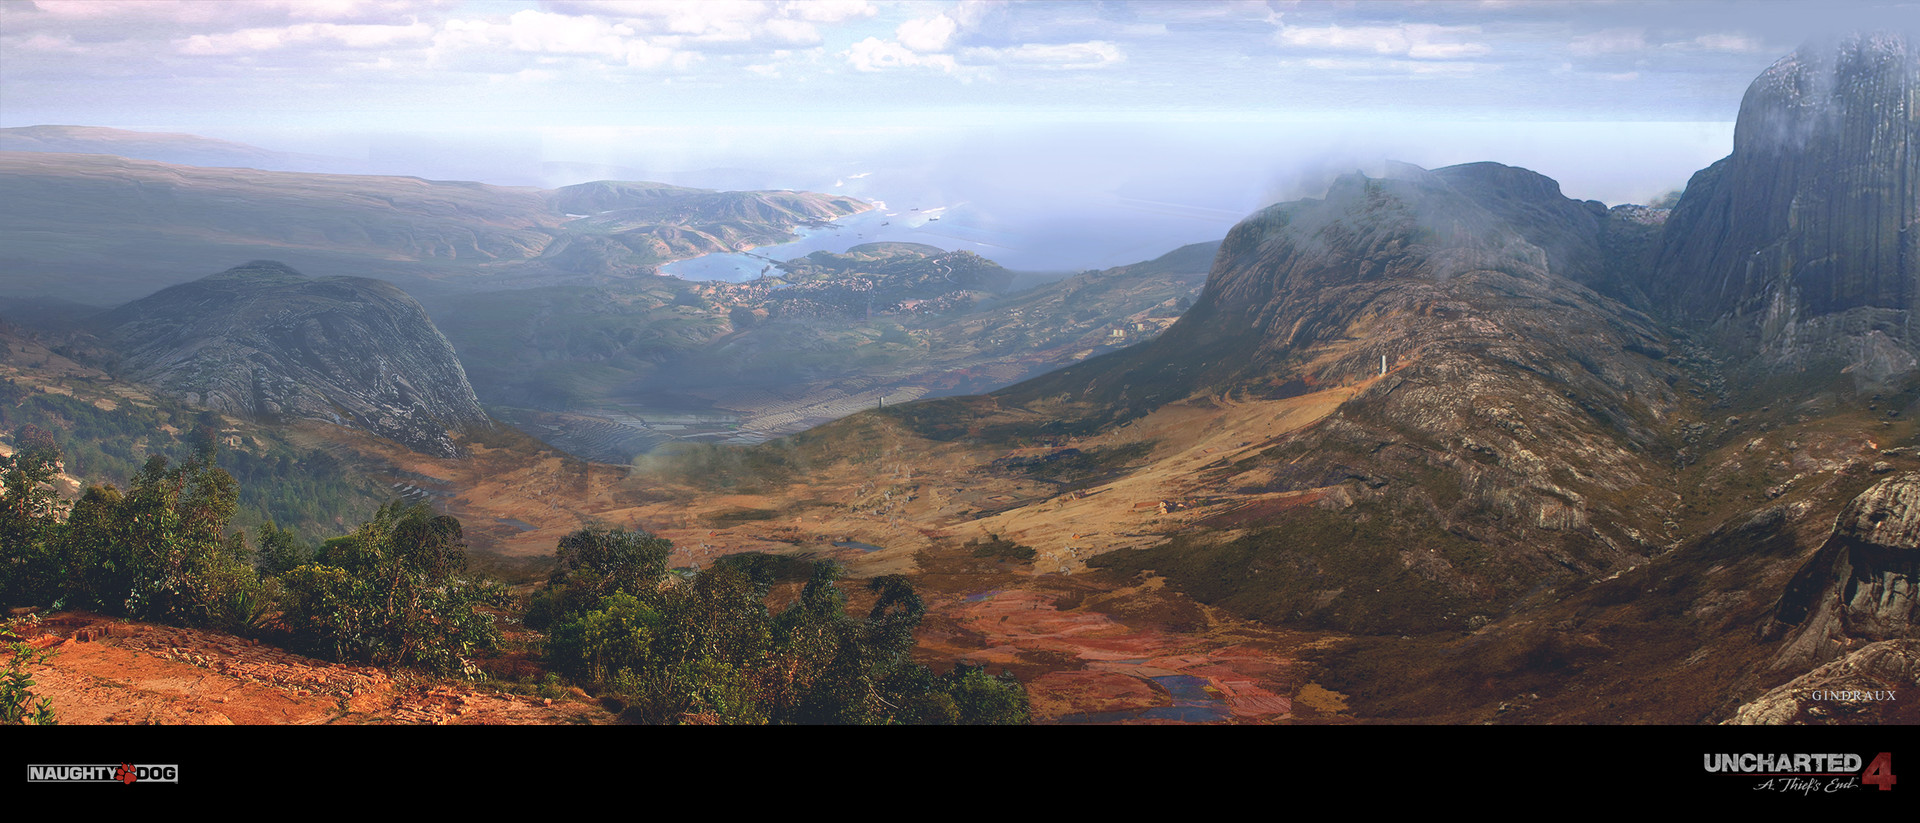 Nick Gindraux Digital Painting Concept Art Uncharted 4 Madagascar Vista